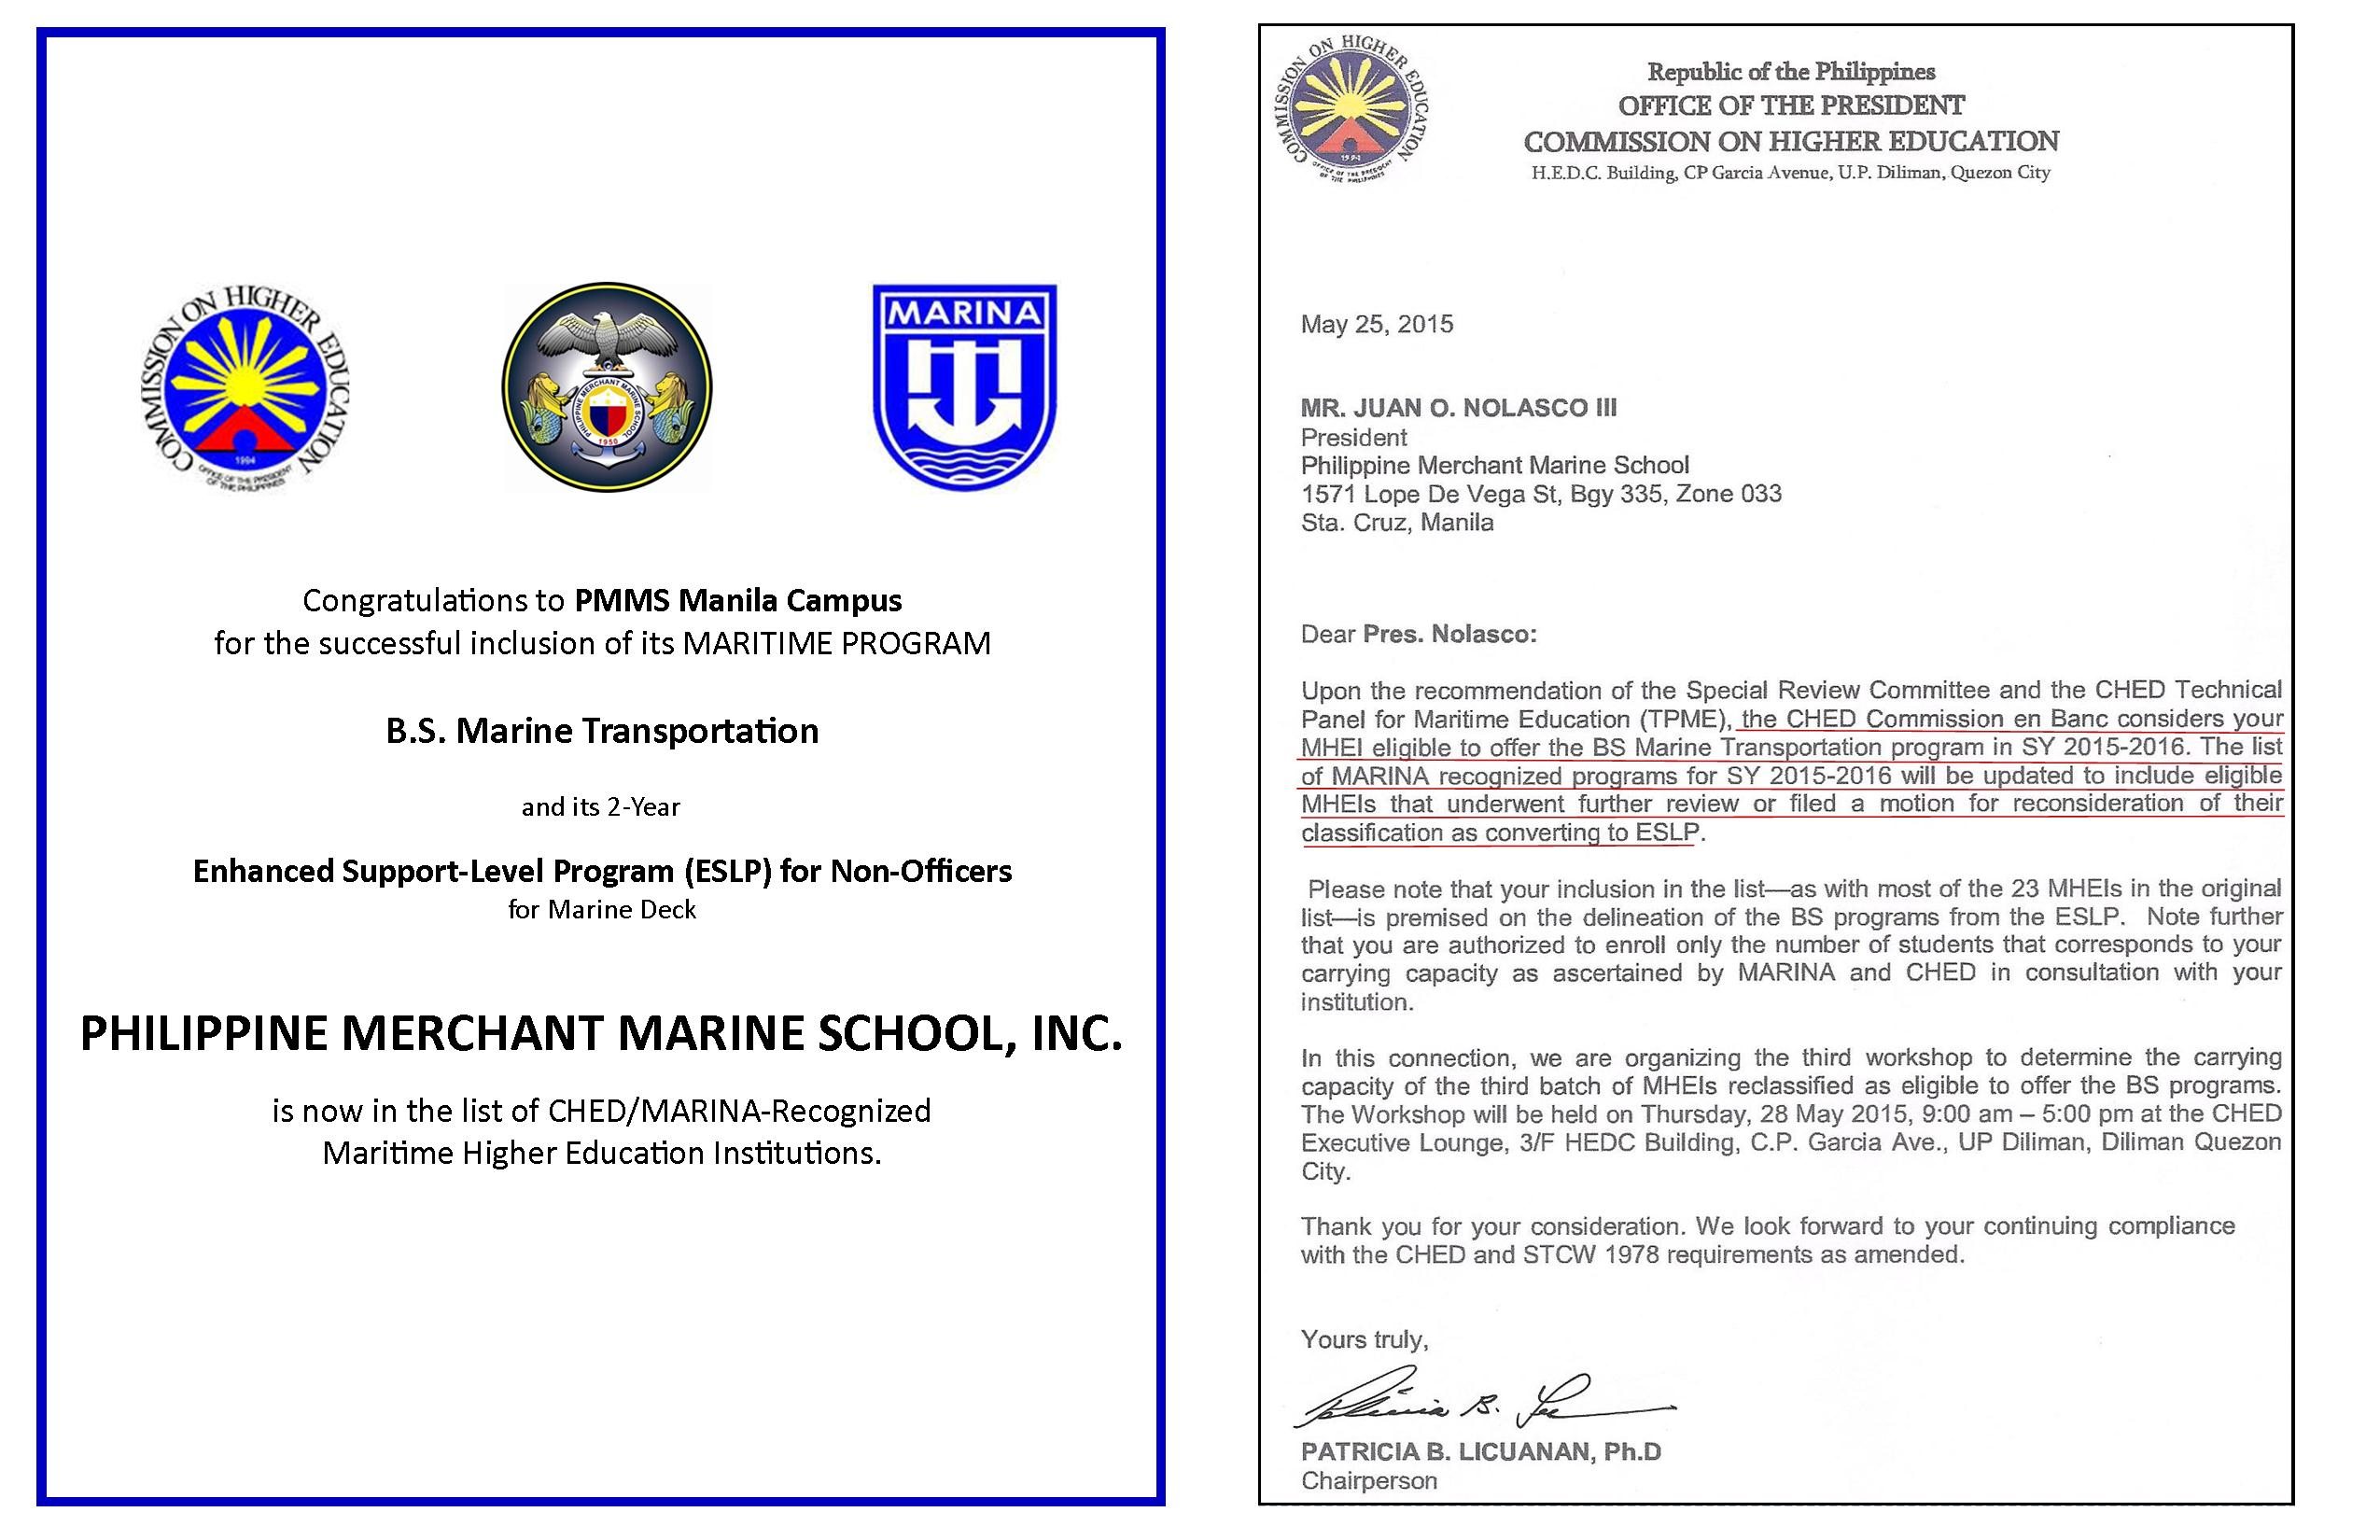 PMMS Maritime Programs are recognized by CHED/MARINA.